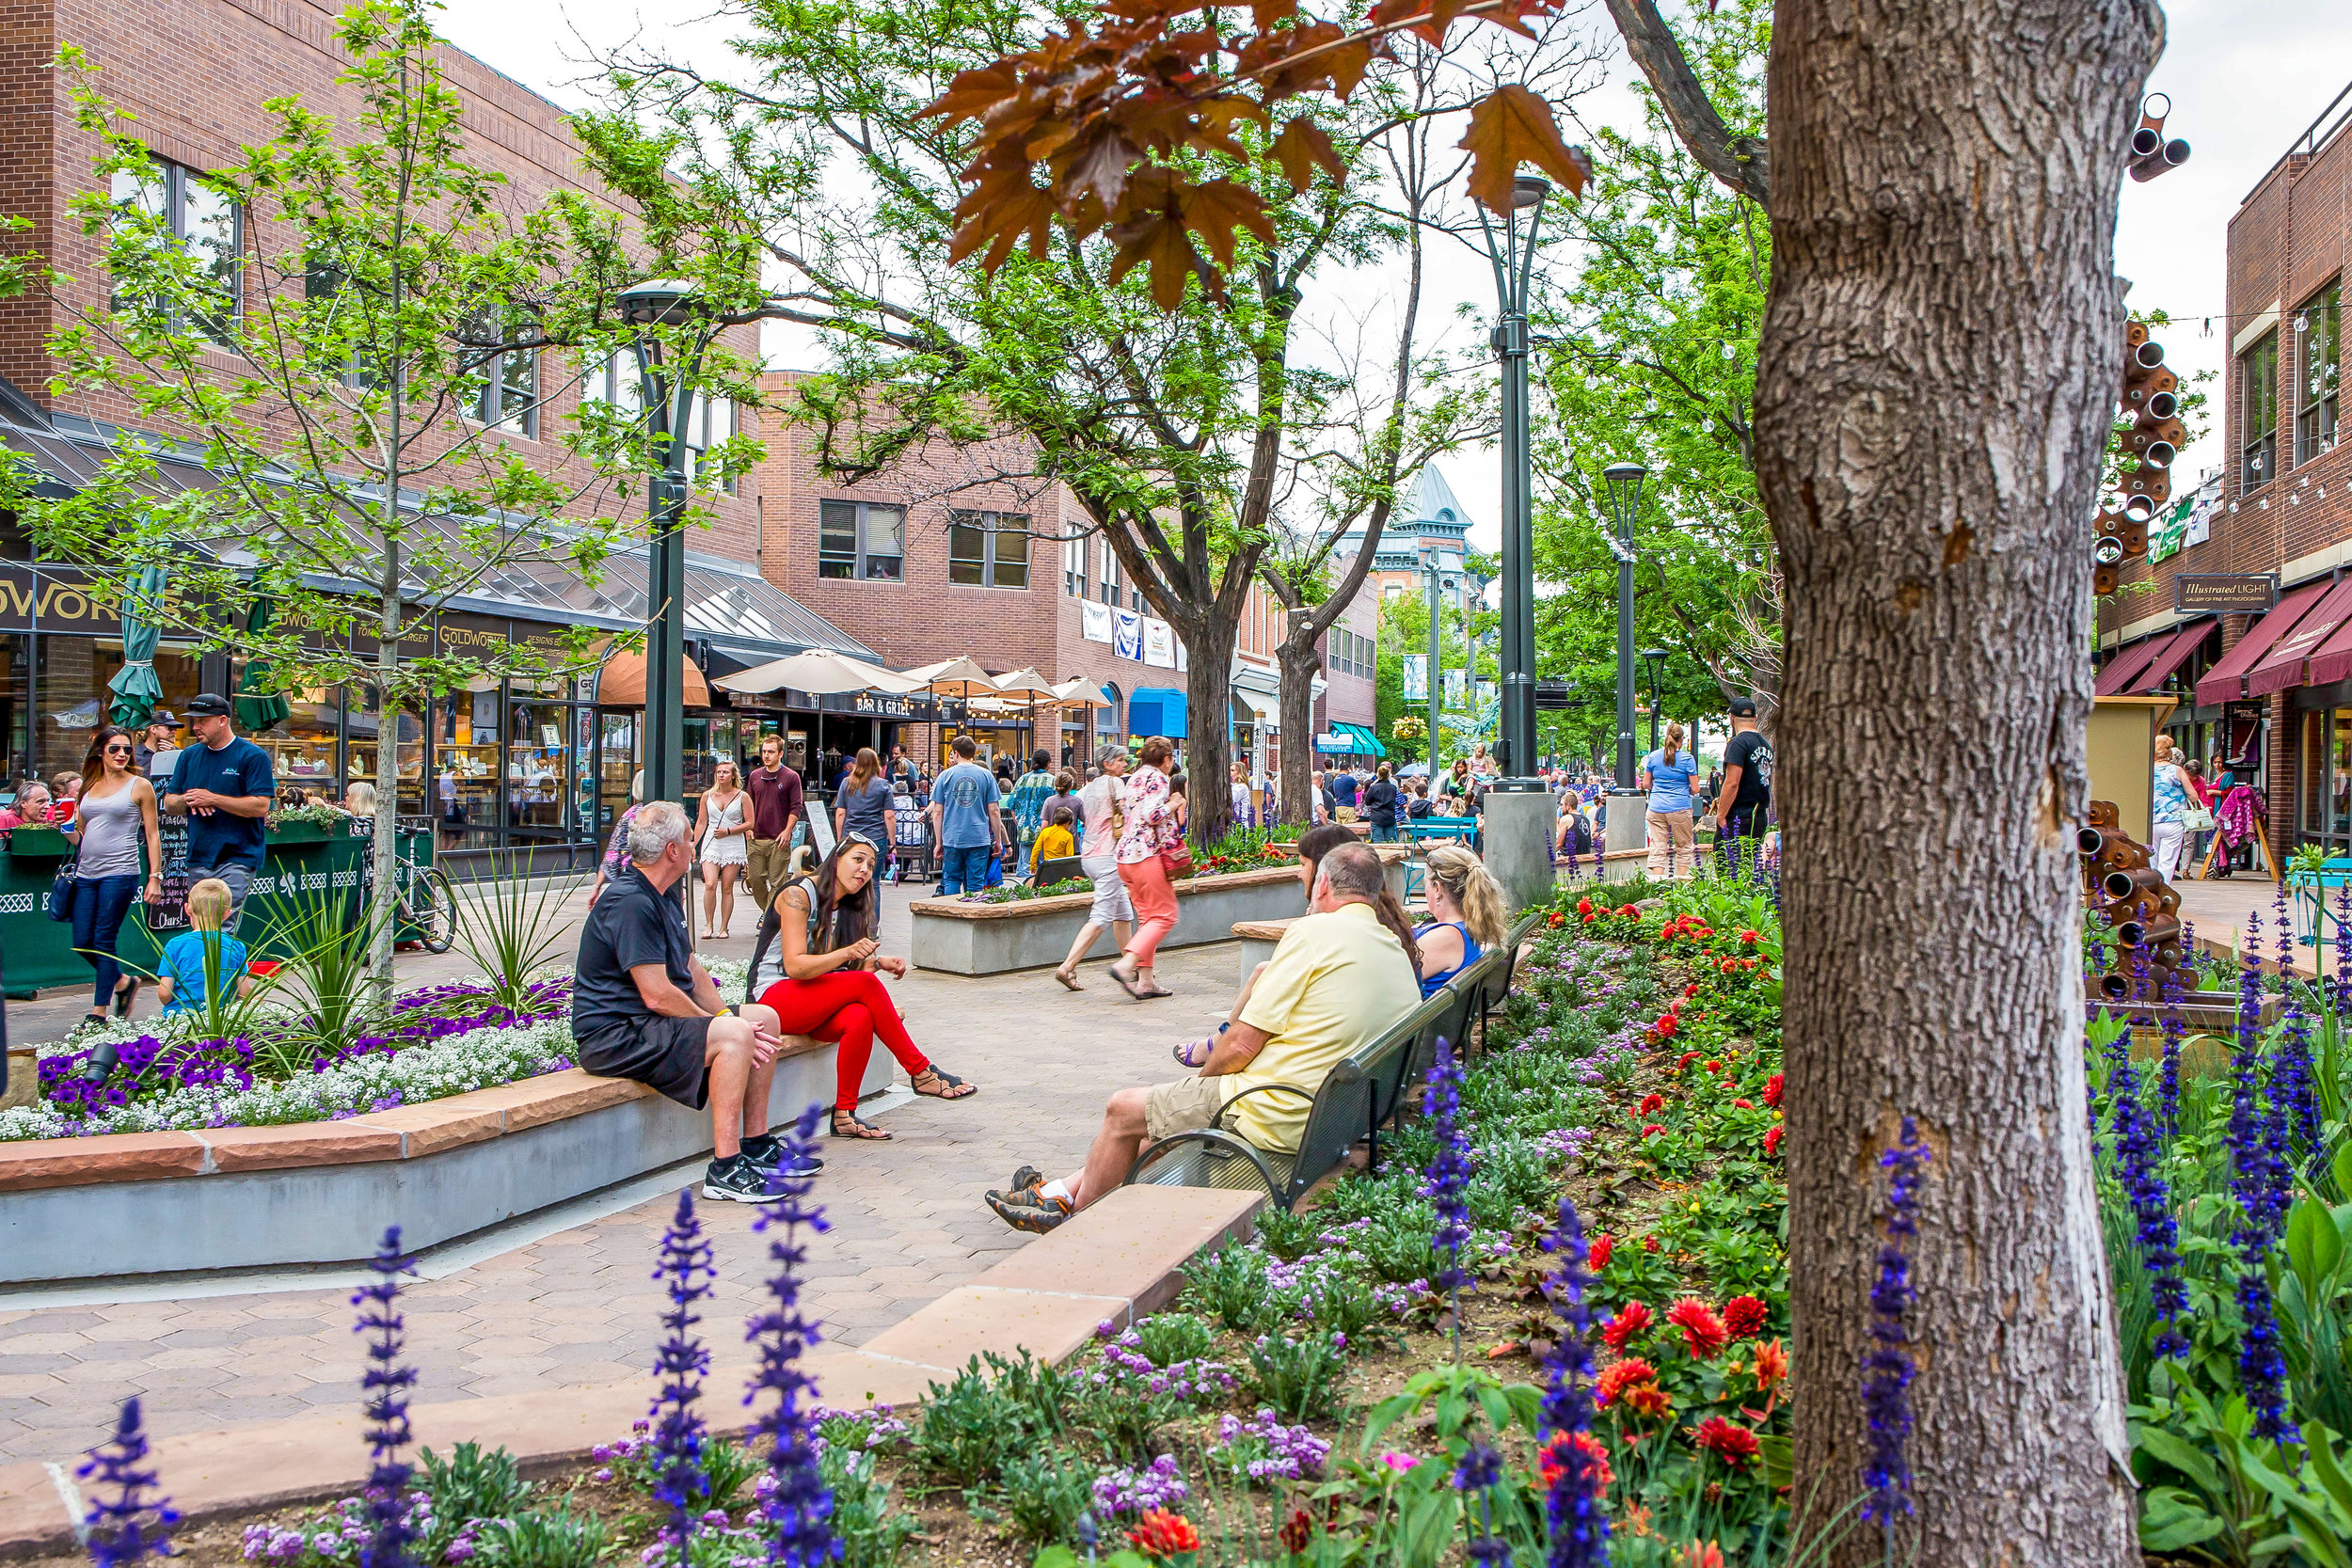 Old_Town_Square_Forest-edit (1 of 1).jpg